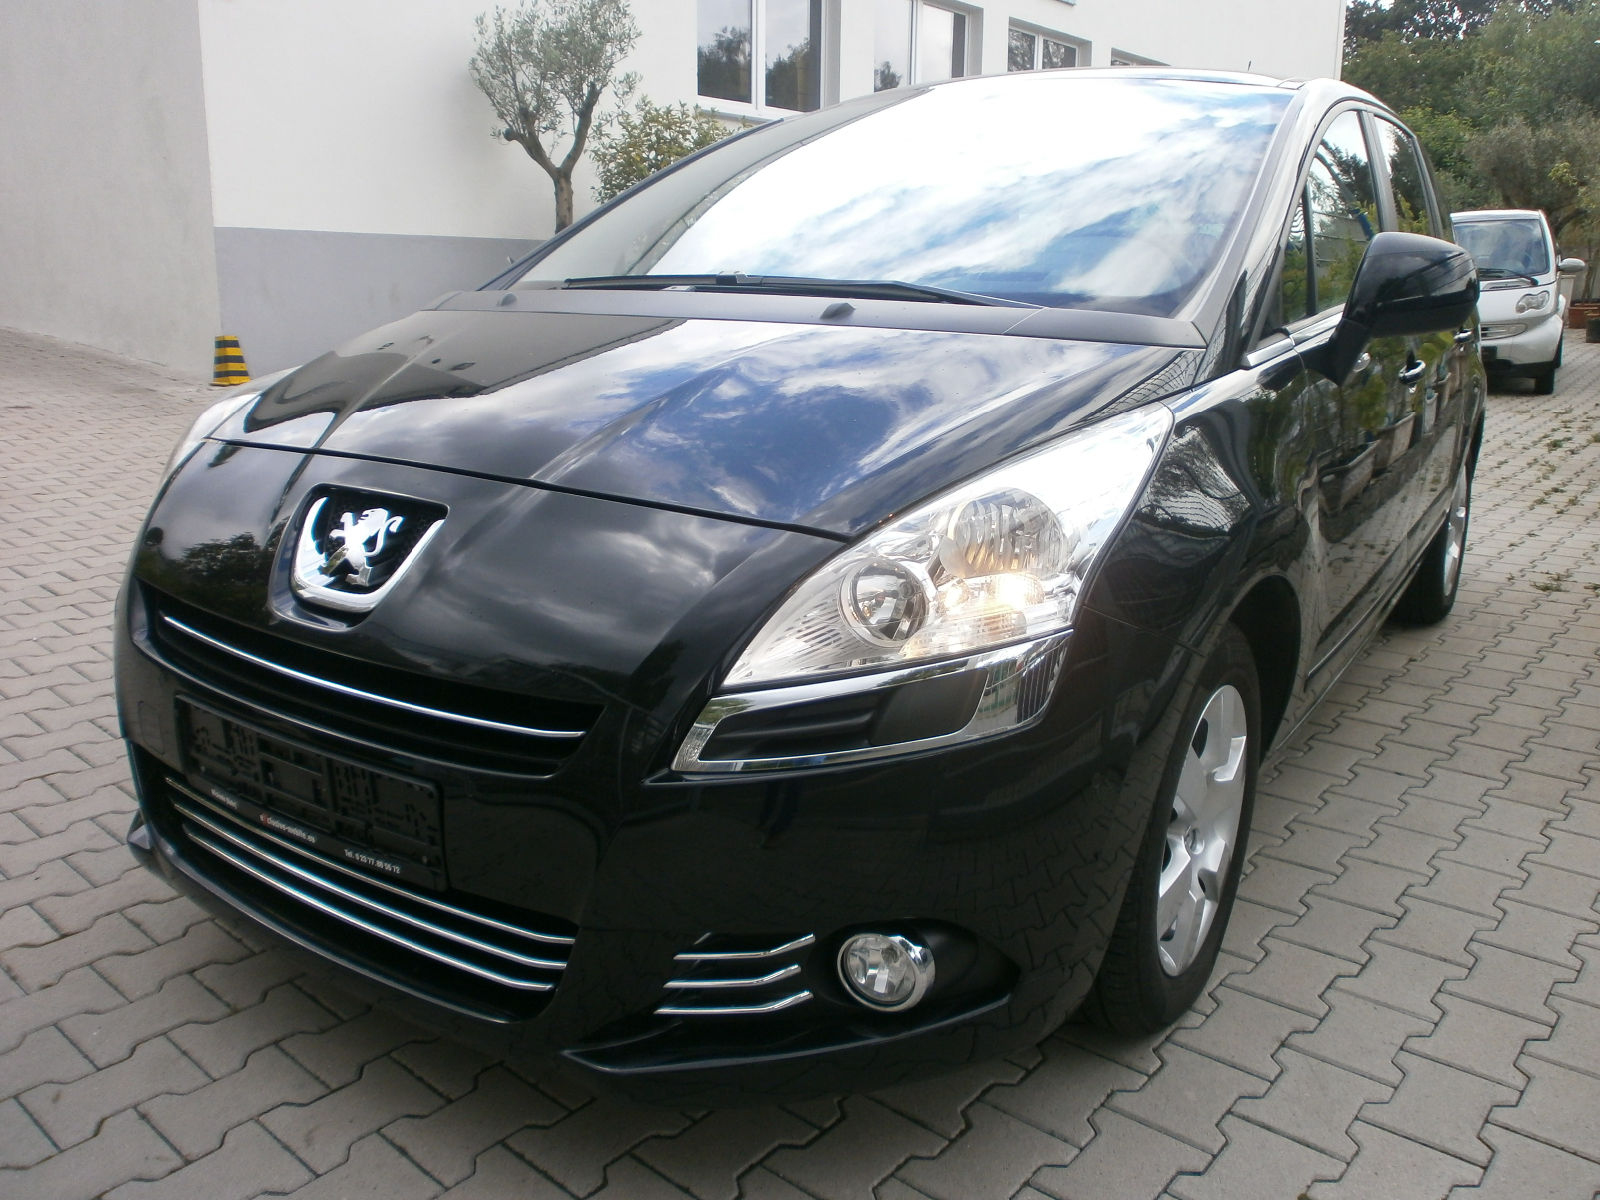 PEUGEOT 5008 1.6 HDI BUSINESS LINE 7 SEATS